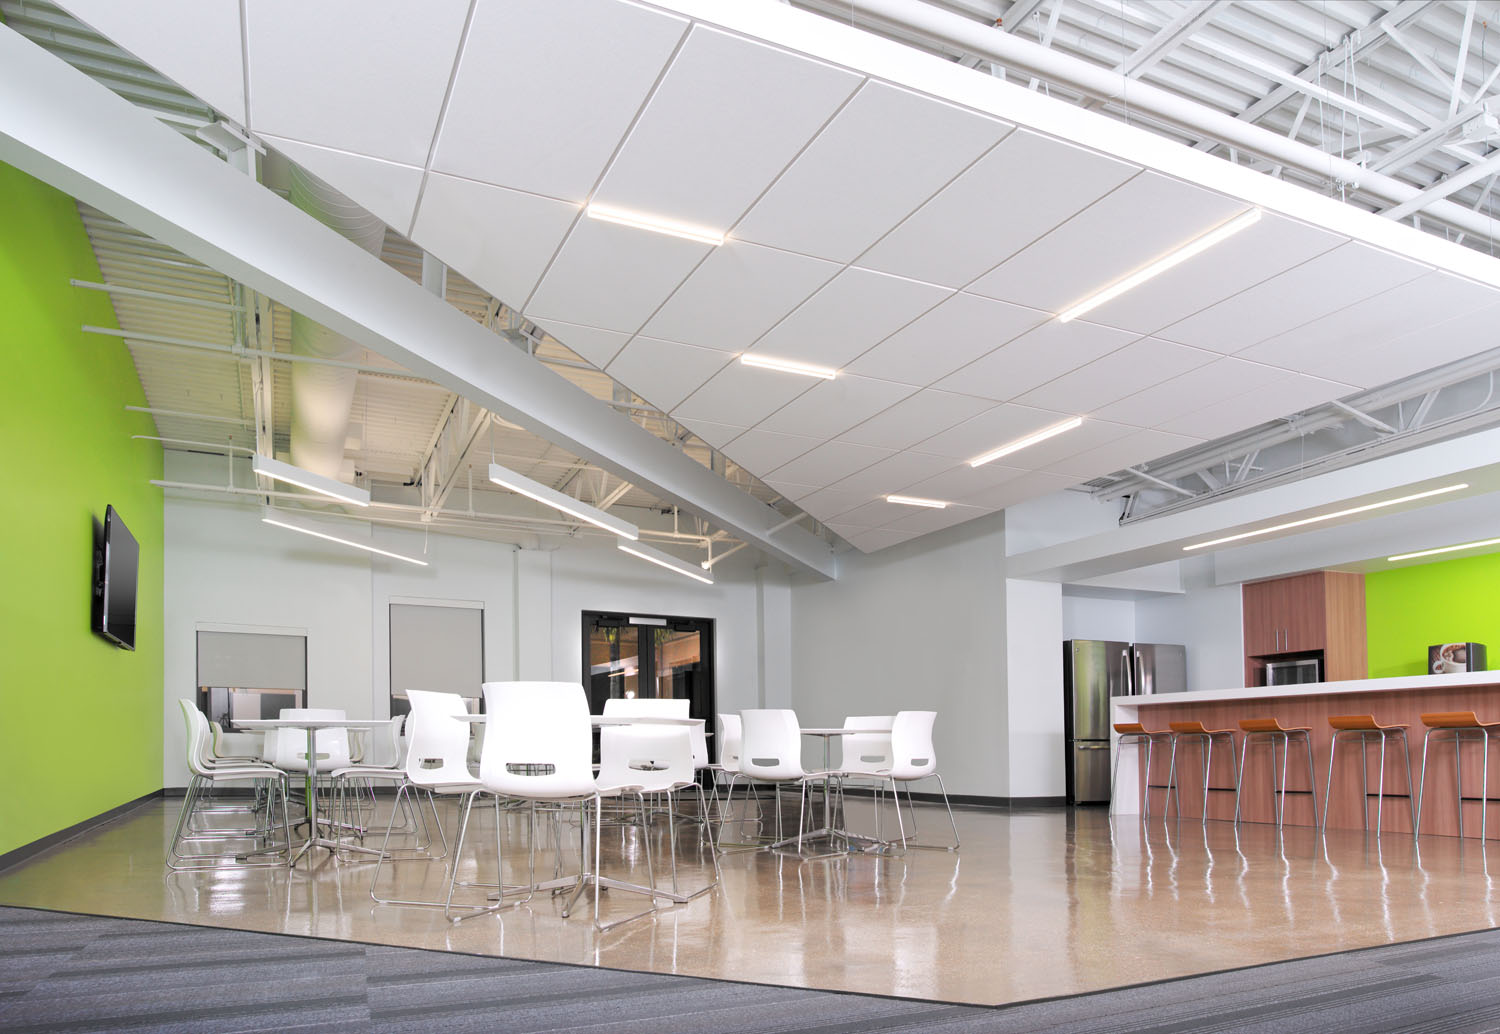 The green accent walls of the Gartner Training Center add excitement and energy to the room.